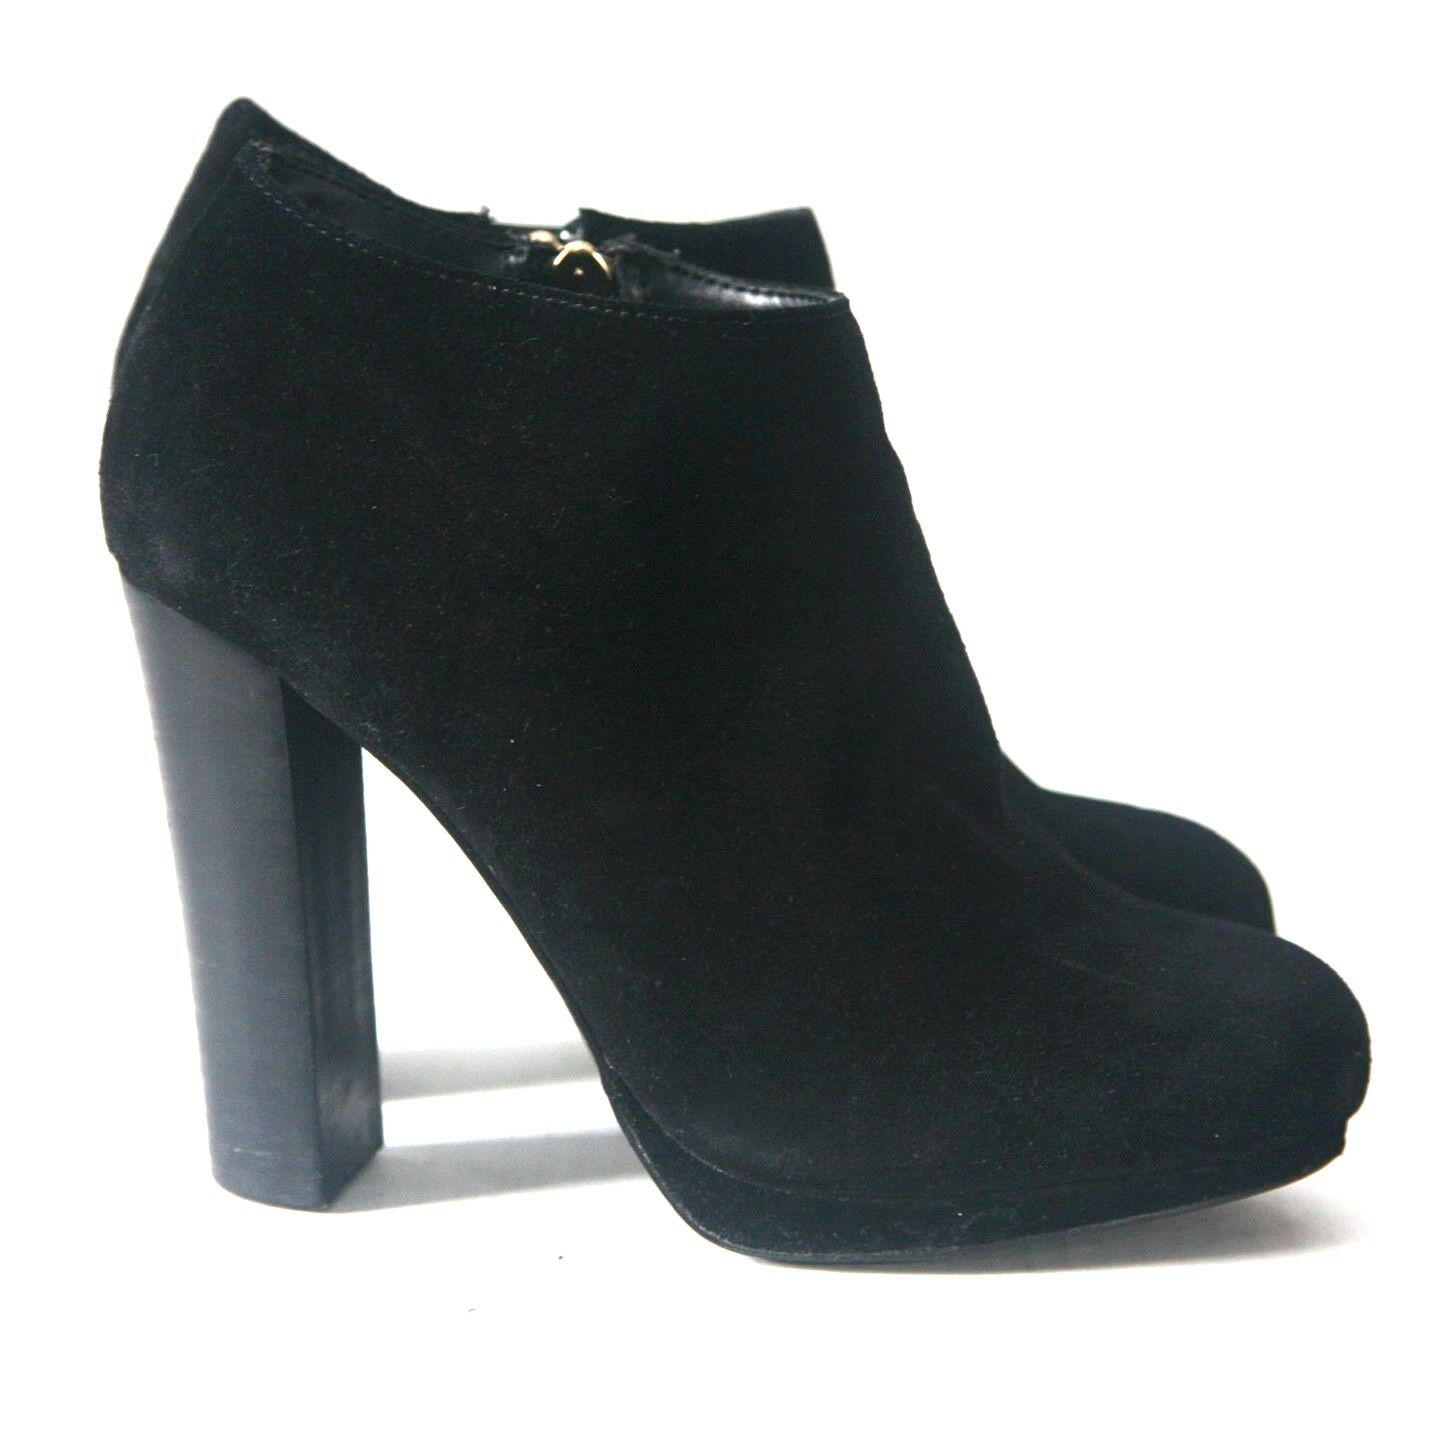 Size 7.5 - VICTORIA'S Chunky SECRET Women's Black Suede Chunky VICTORIA'S Heel Ankle Boots 6d59e5